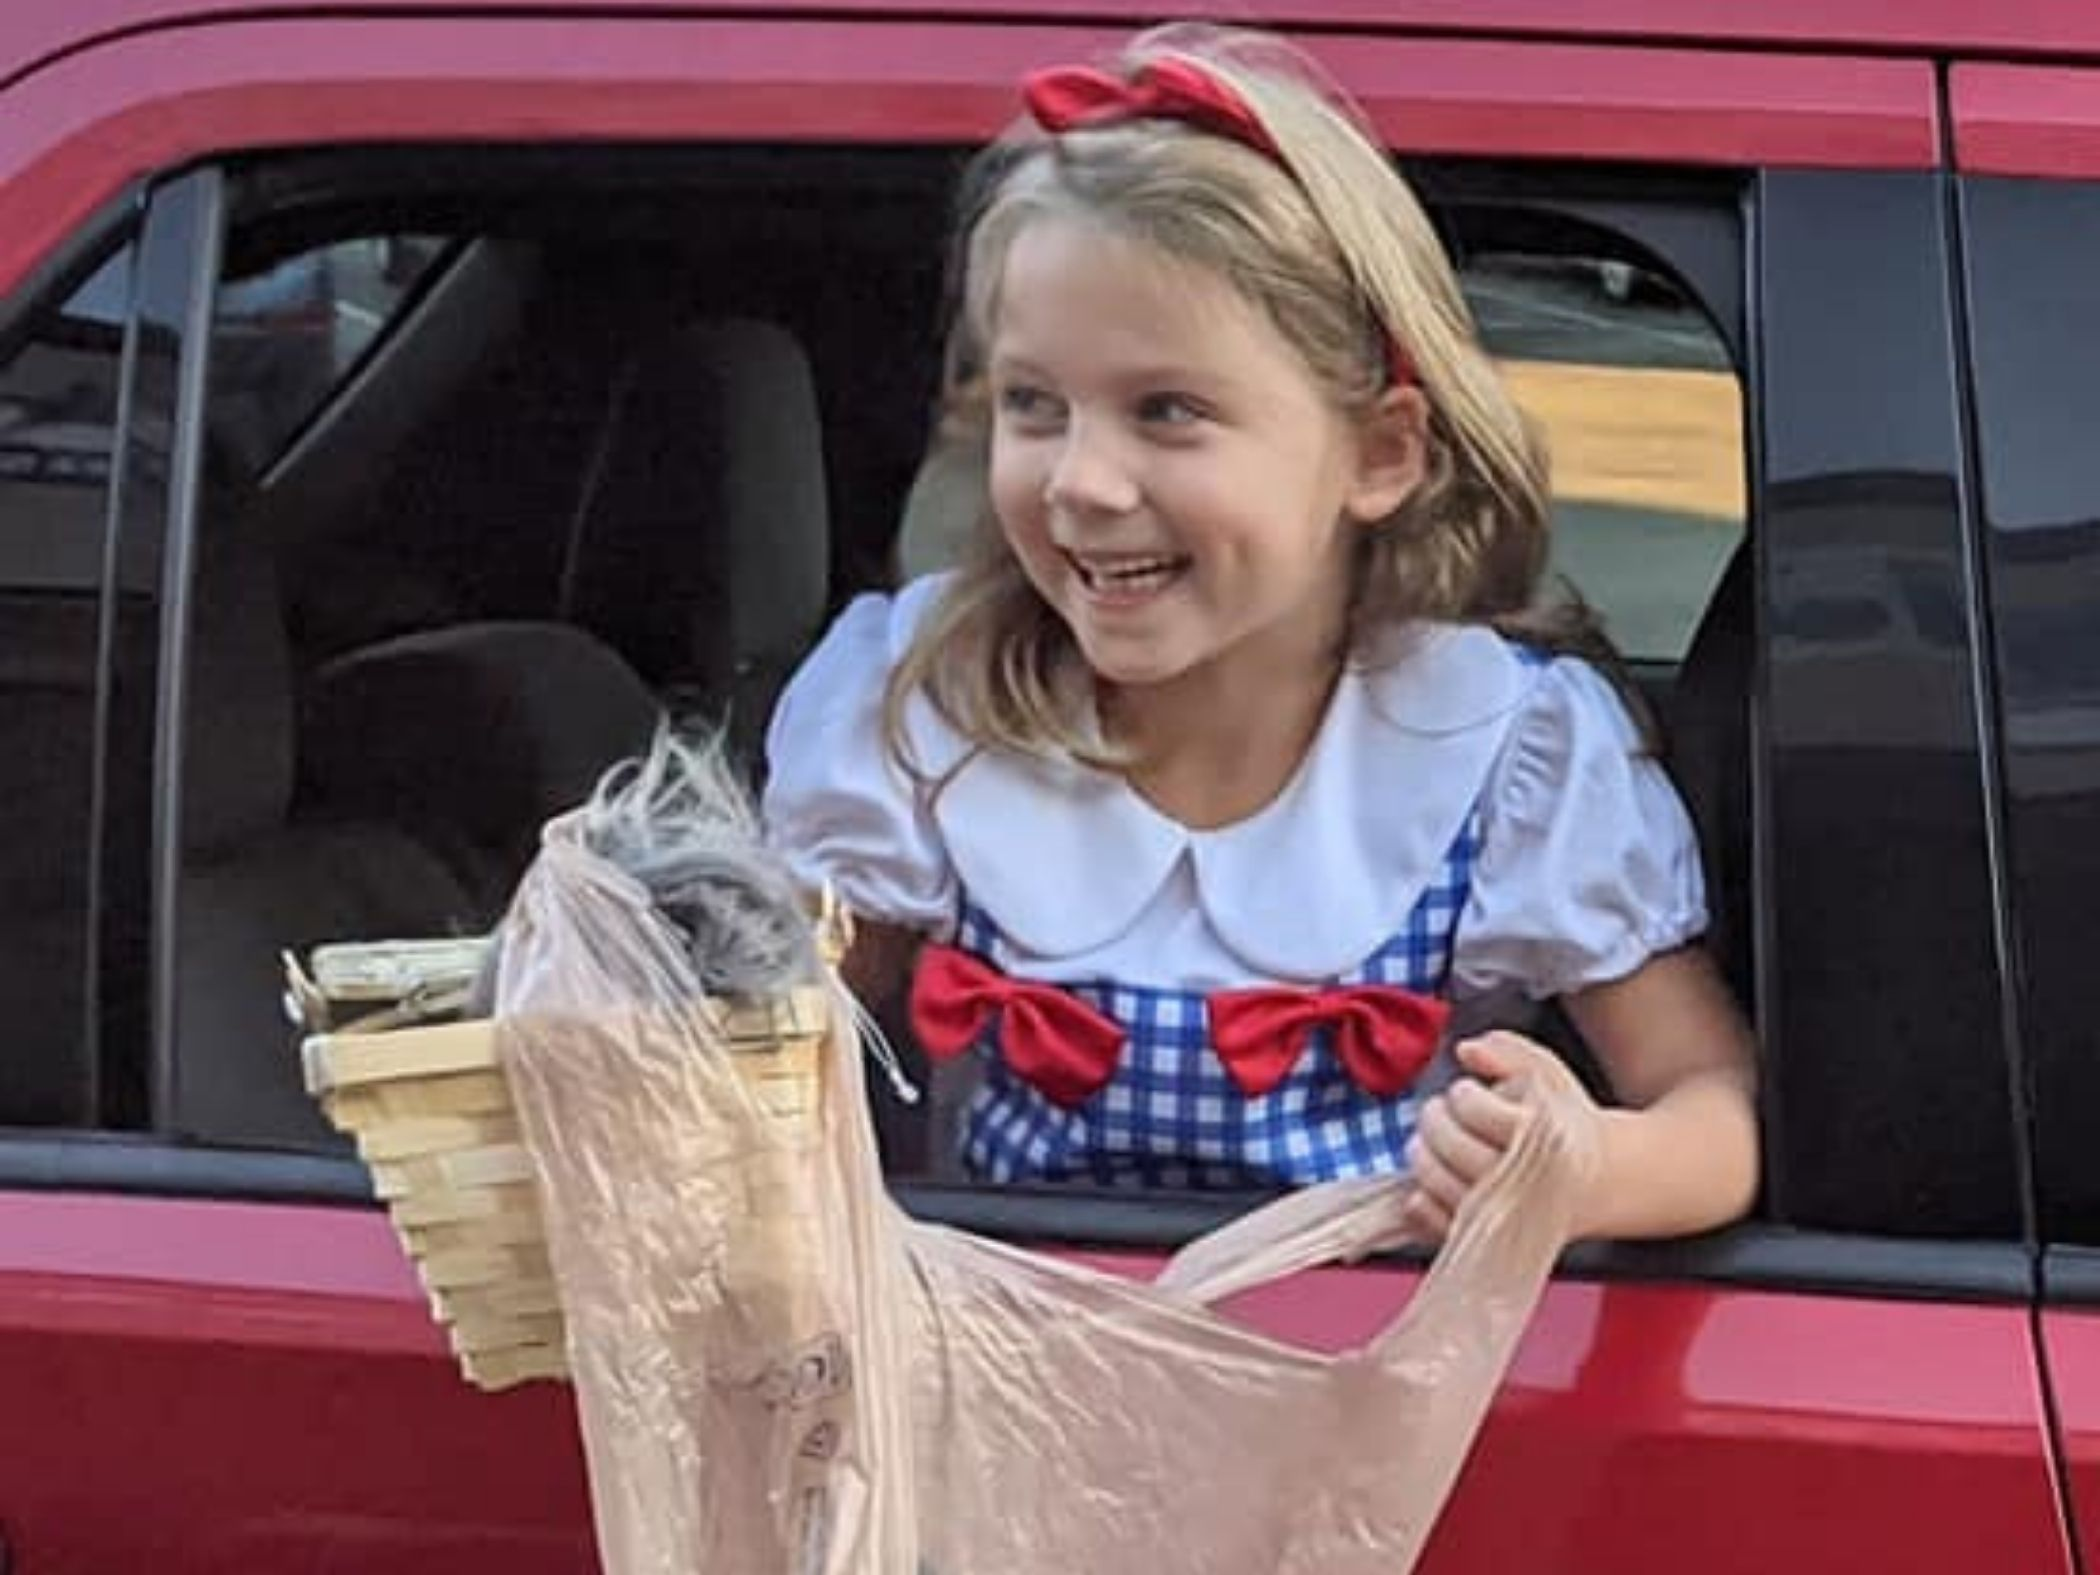 Child waits to get candy from car window